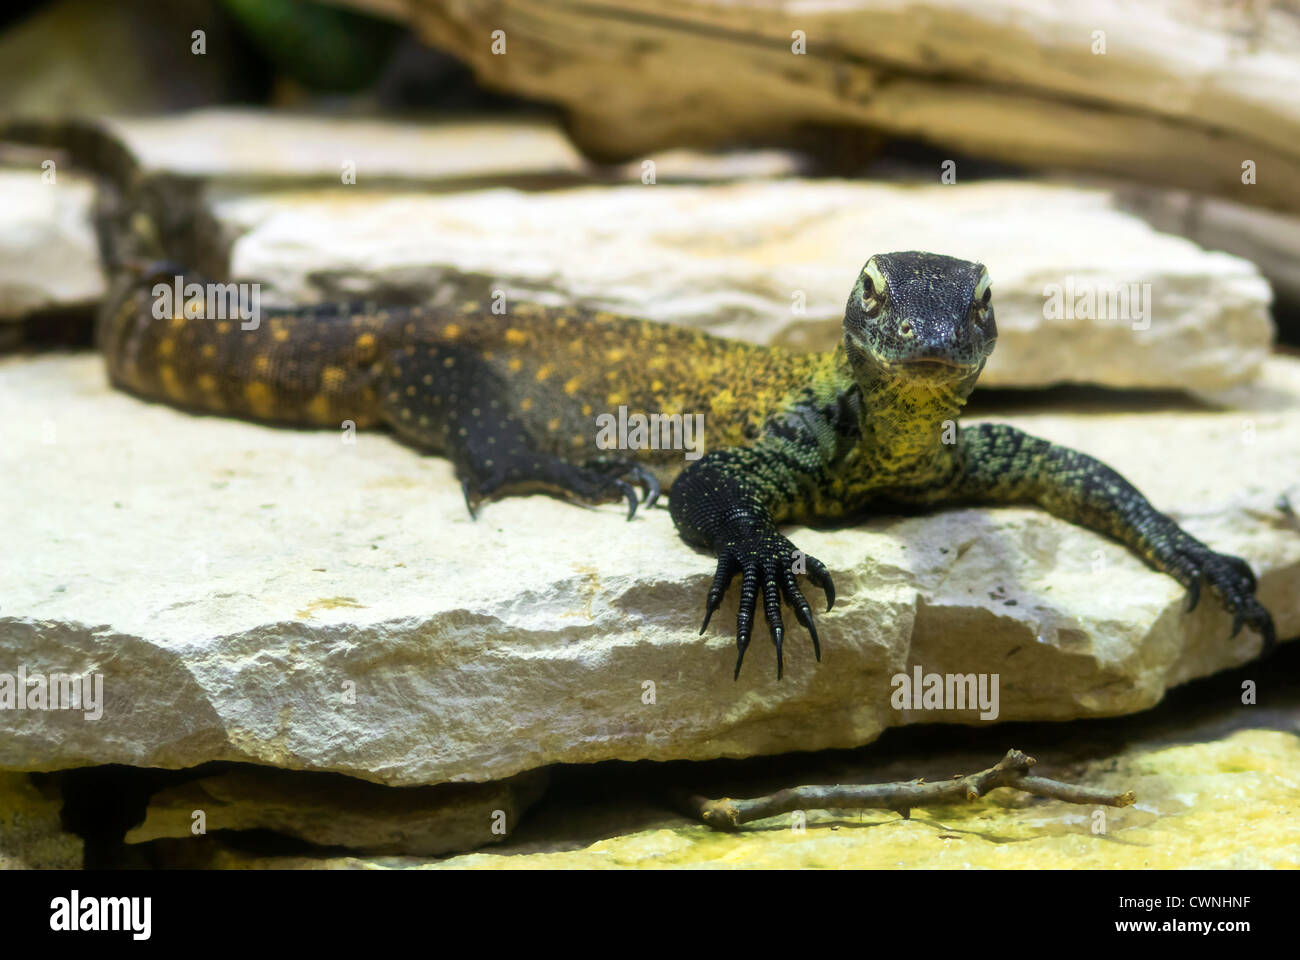 A crafty komodo dragon - Stock Image